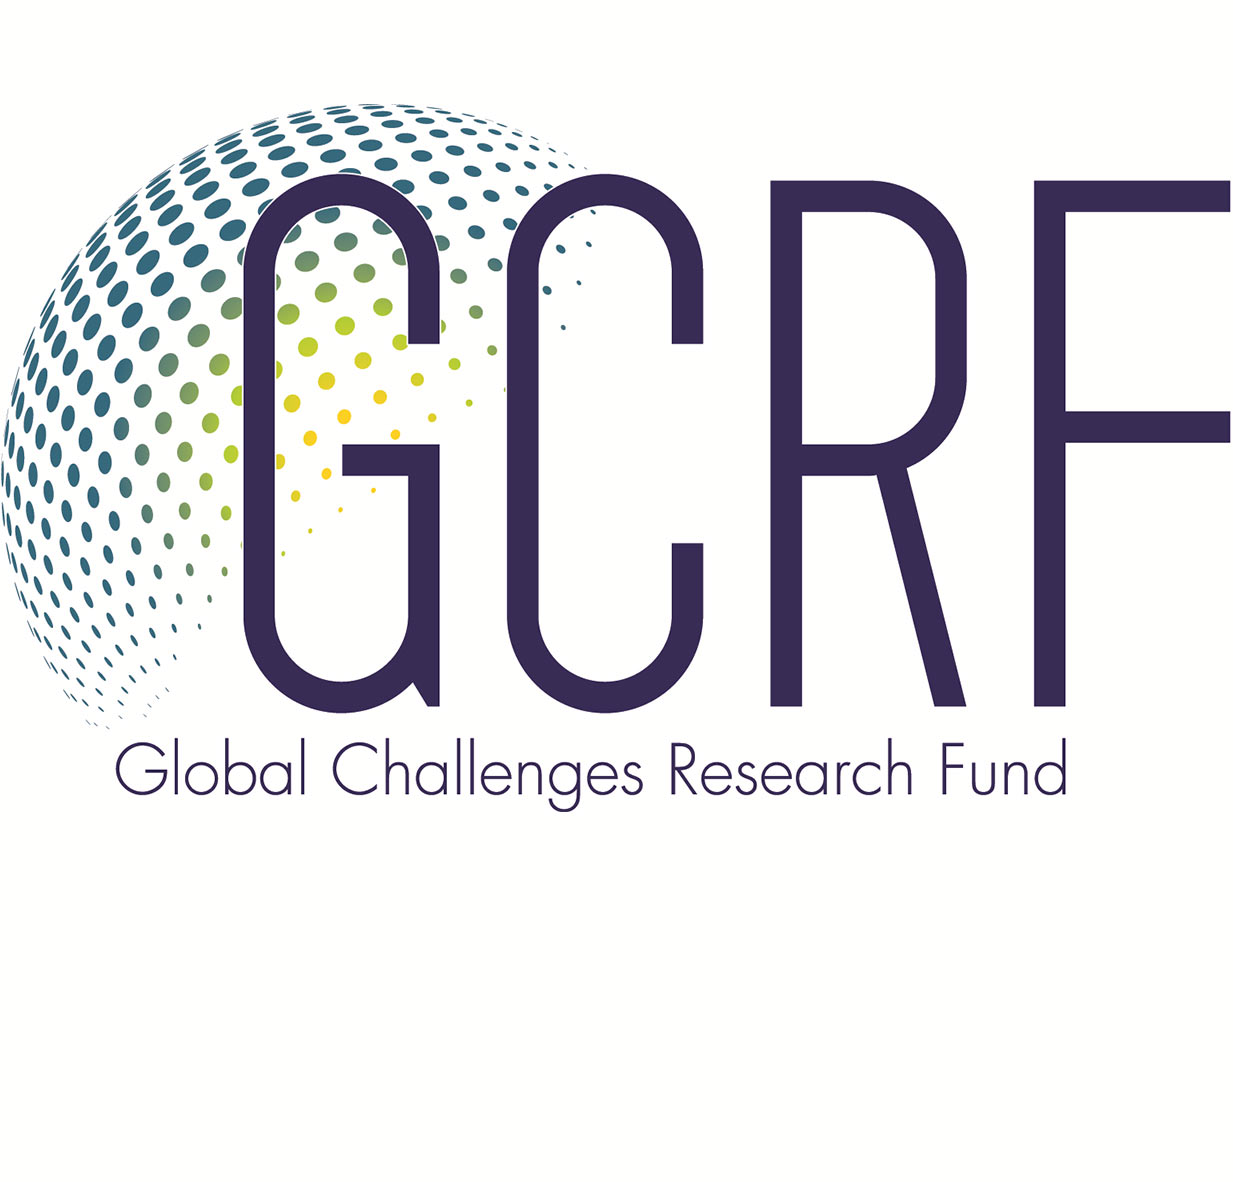 GCRF Grand Challenges Research Fund logo